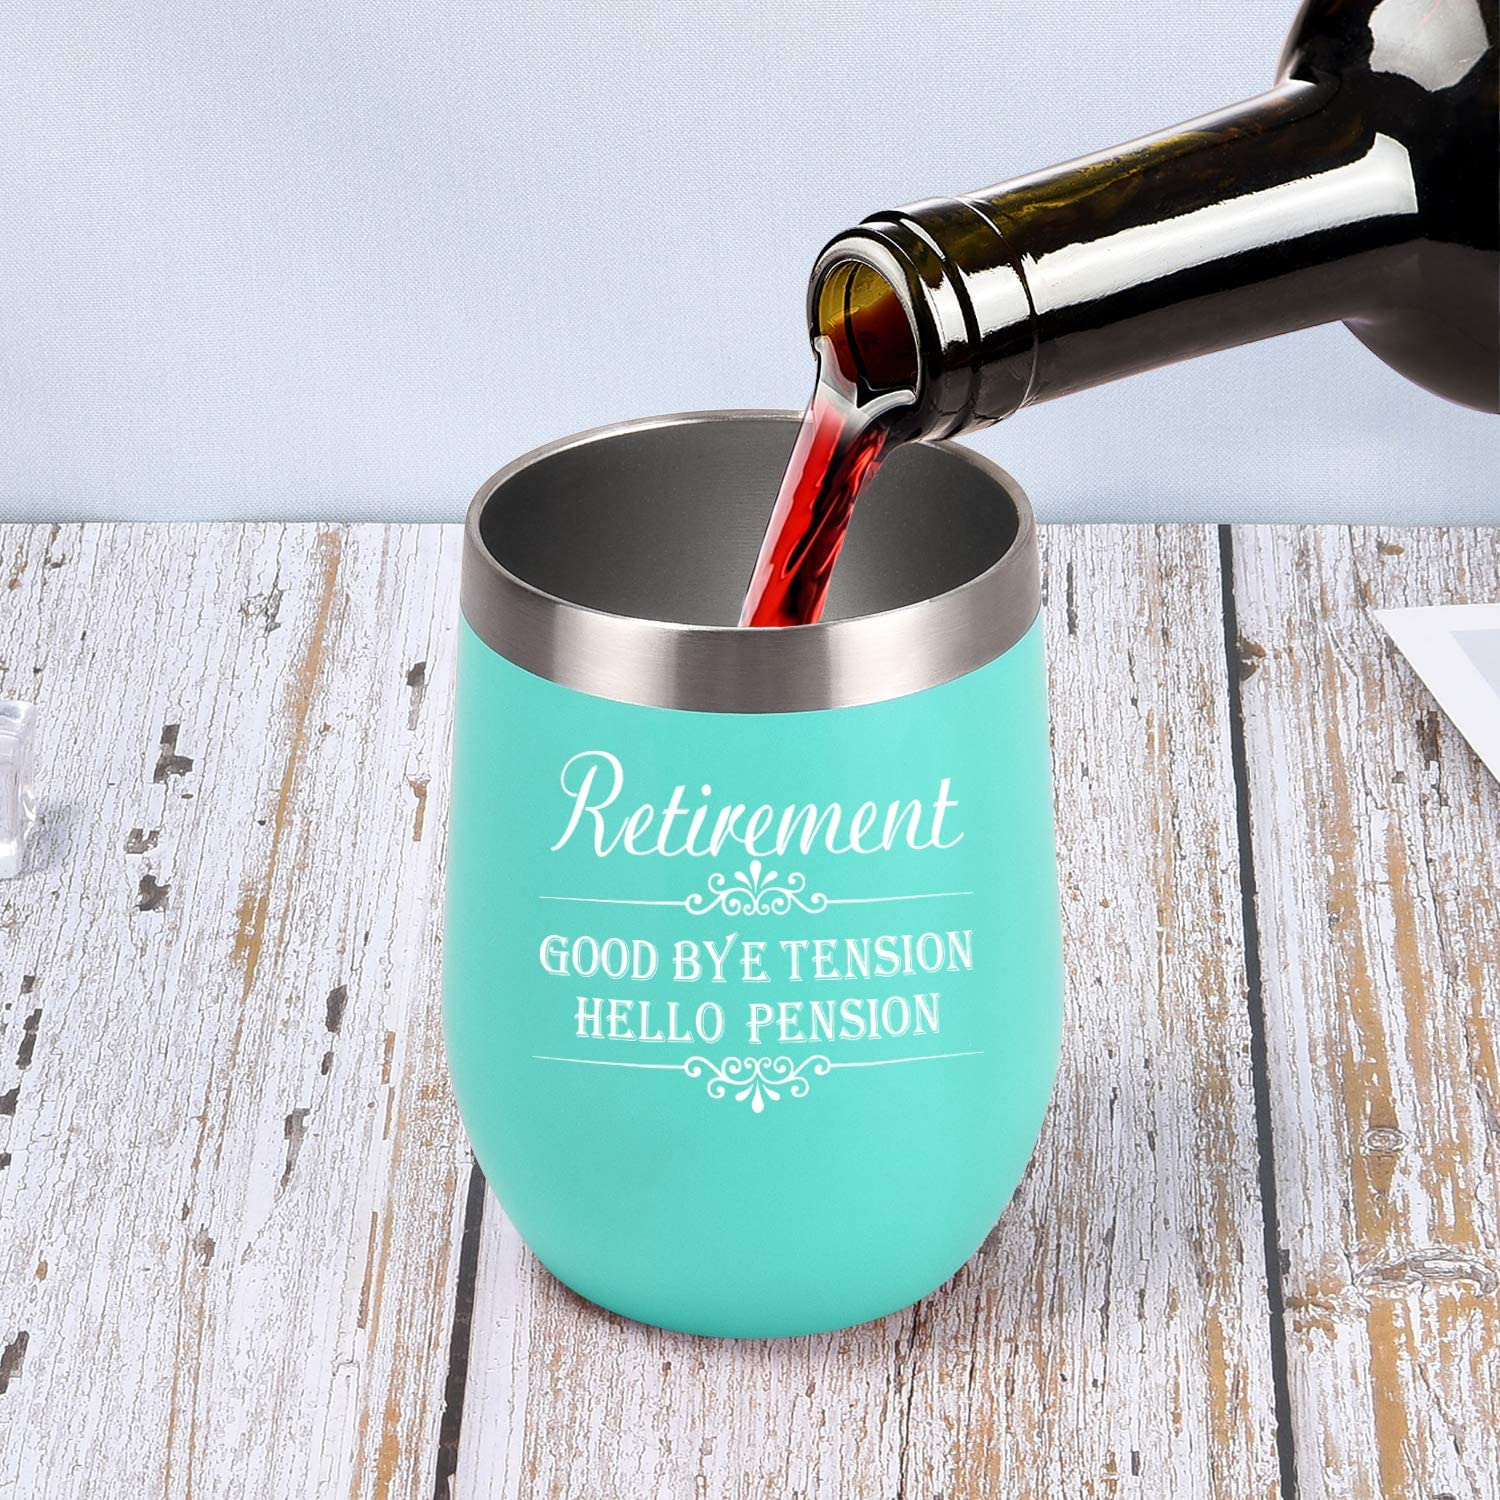 Teachers 12 Oz Insulated Stainless Steel Wine Tumbler Wife Coworkers Mom Retirement Tumbler Gifts Good Bye Tension Hello Pension Wine Tumbler Mint Best Friends BFF Funny Gift for Women